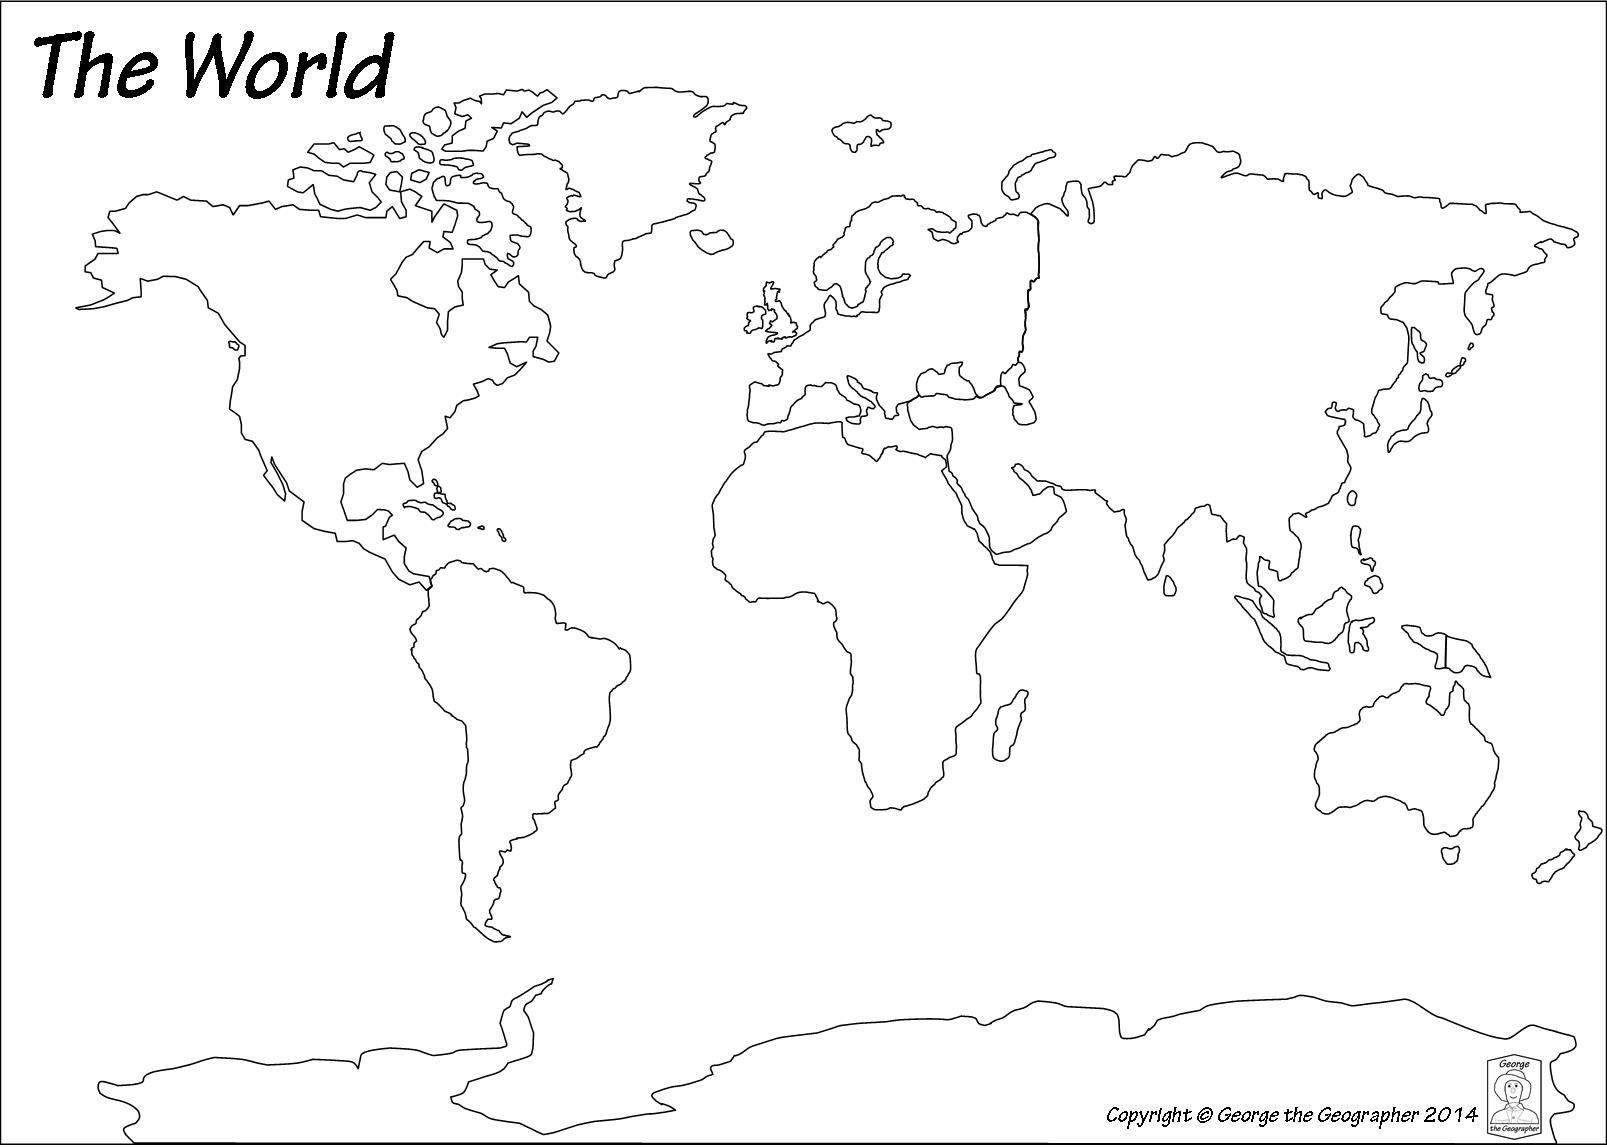 Blank World Map Pdf #3 | World map outline, World map ...